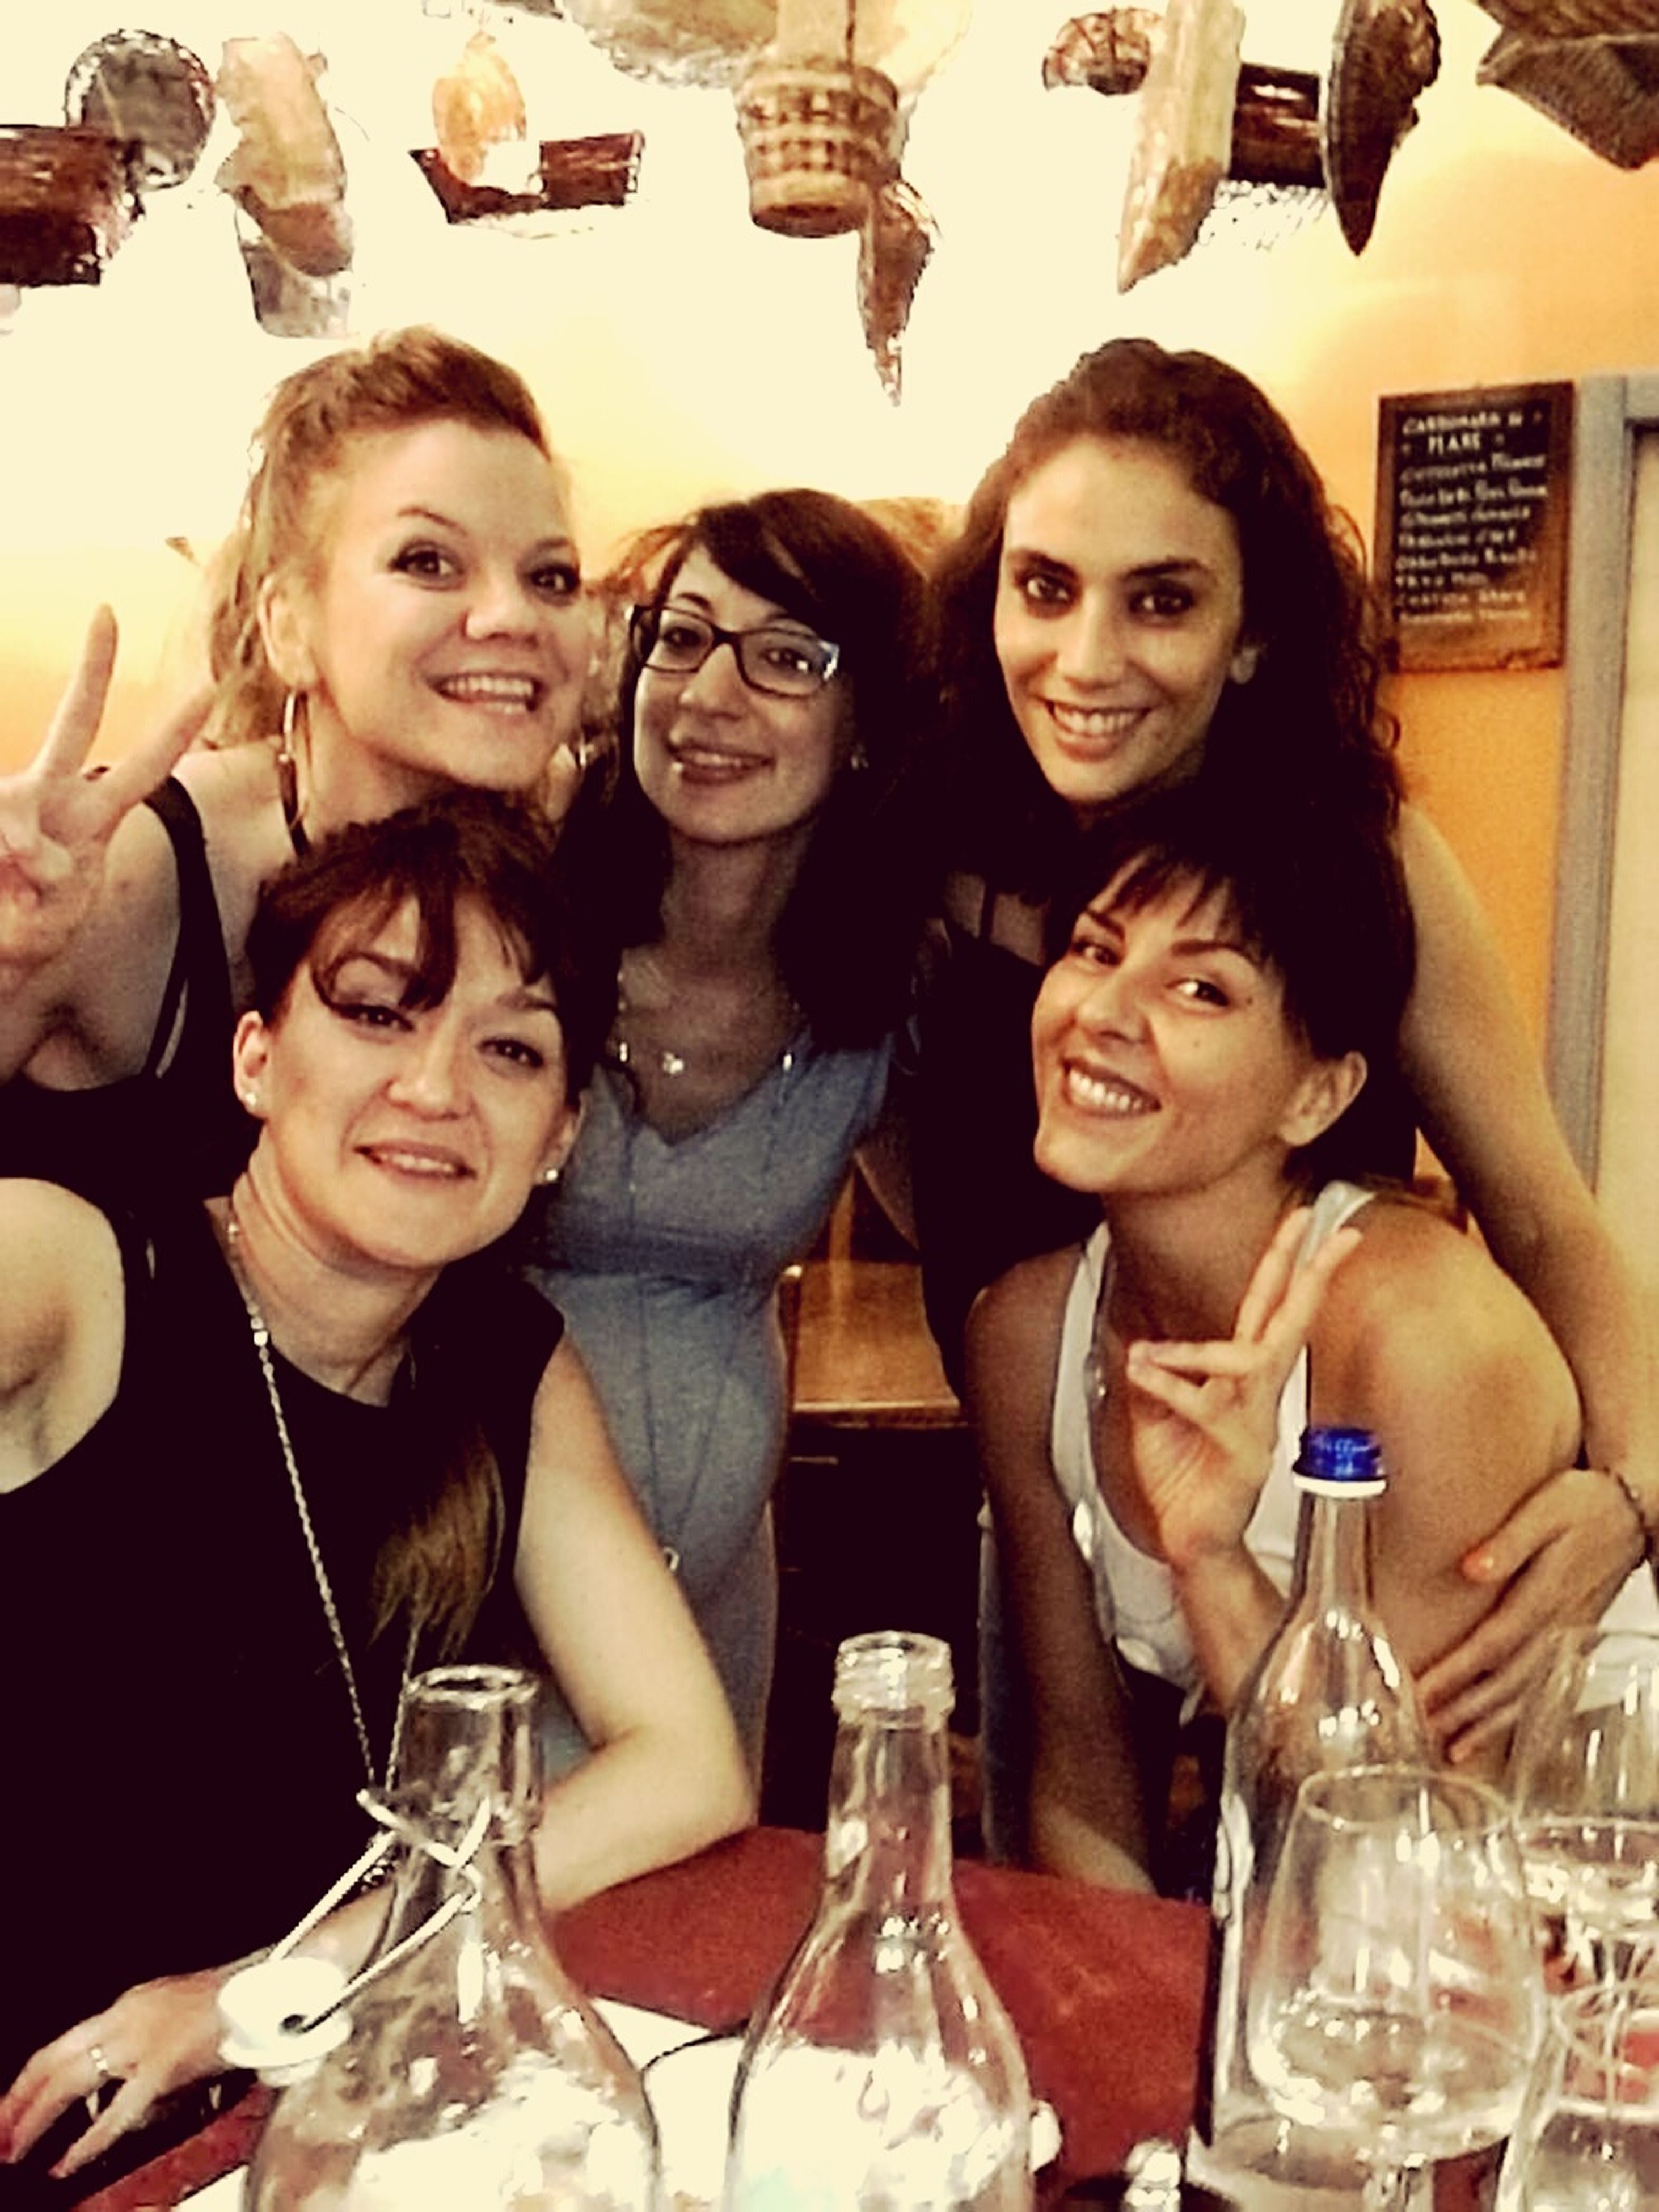 real people, togetherness, alcohol, smiling, young adult, happiness, friendship, young women, selfie, drink, portrait, wireless technology, indoors, day